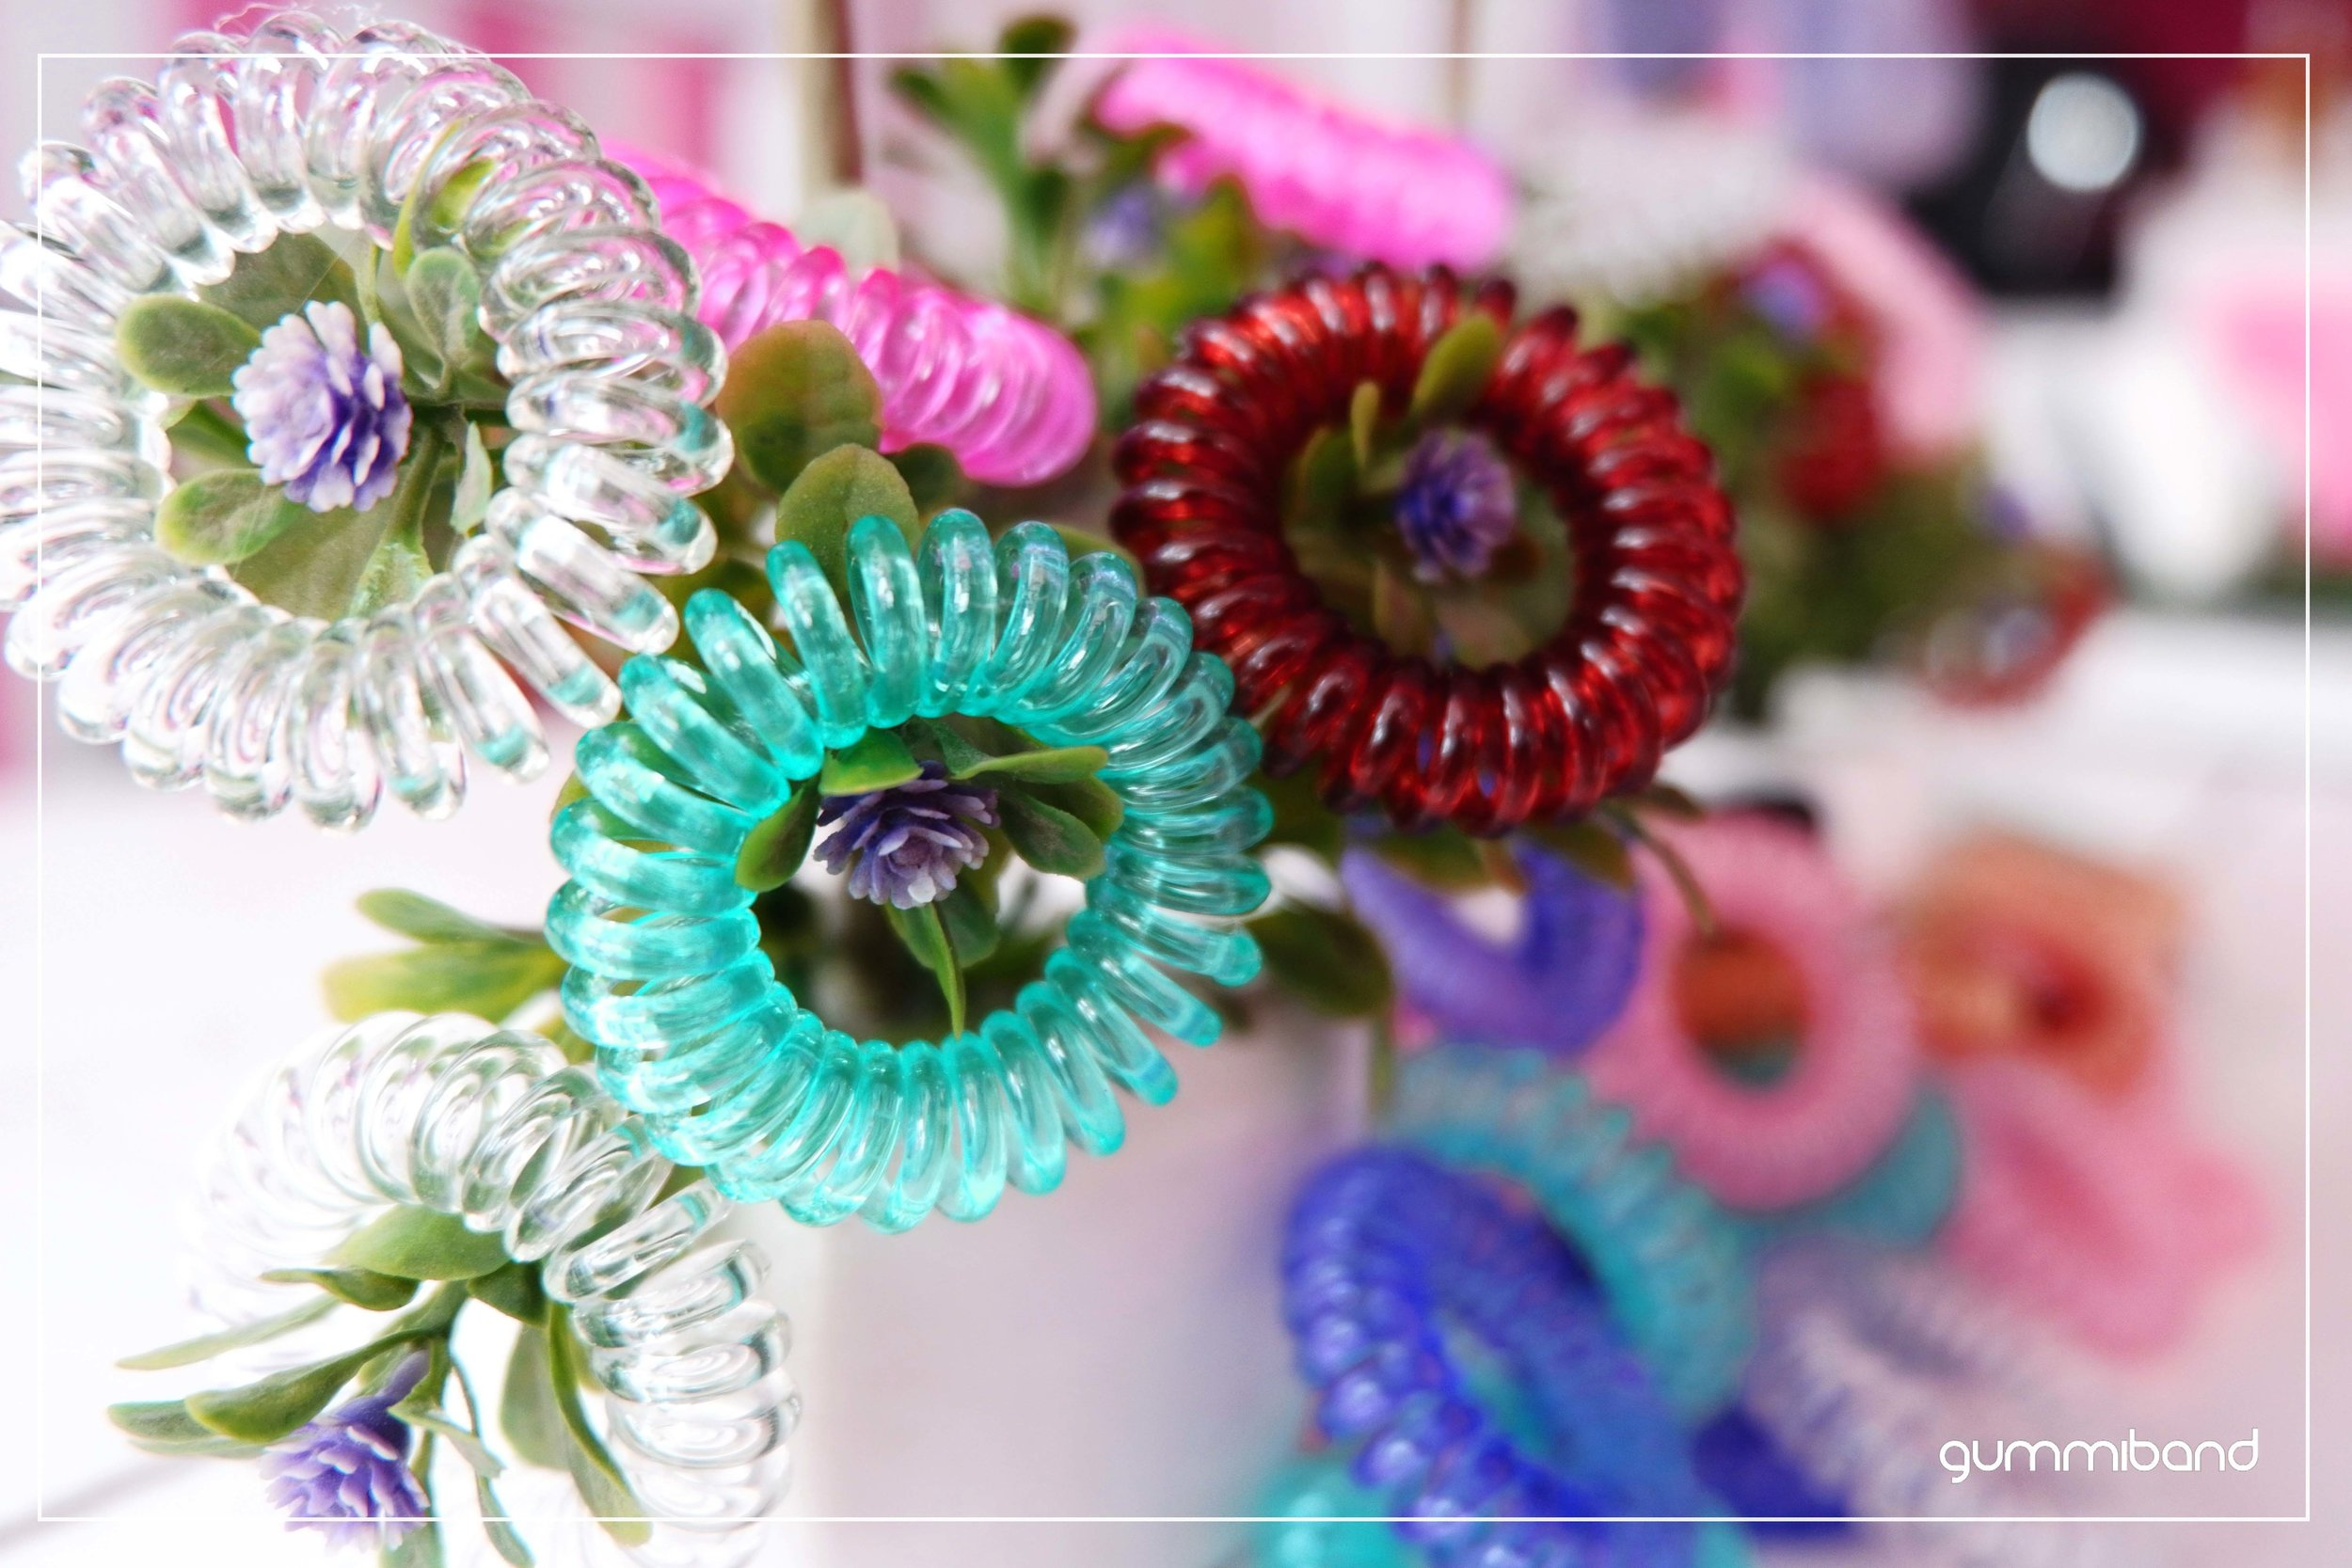 GummiBand Traceless Hair Cords in assorted colors as ornaments